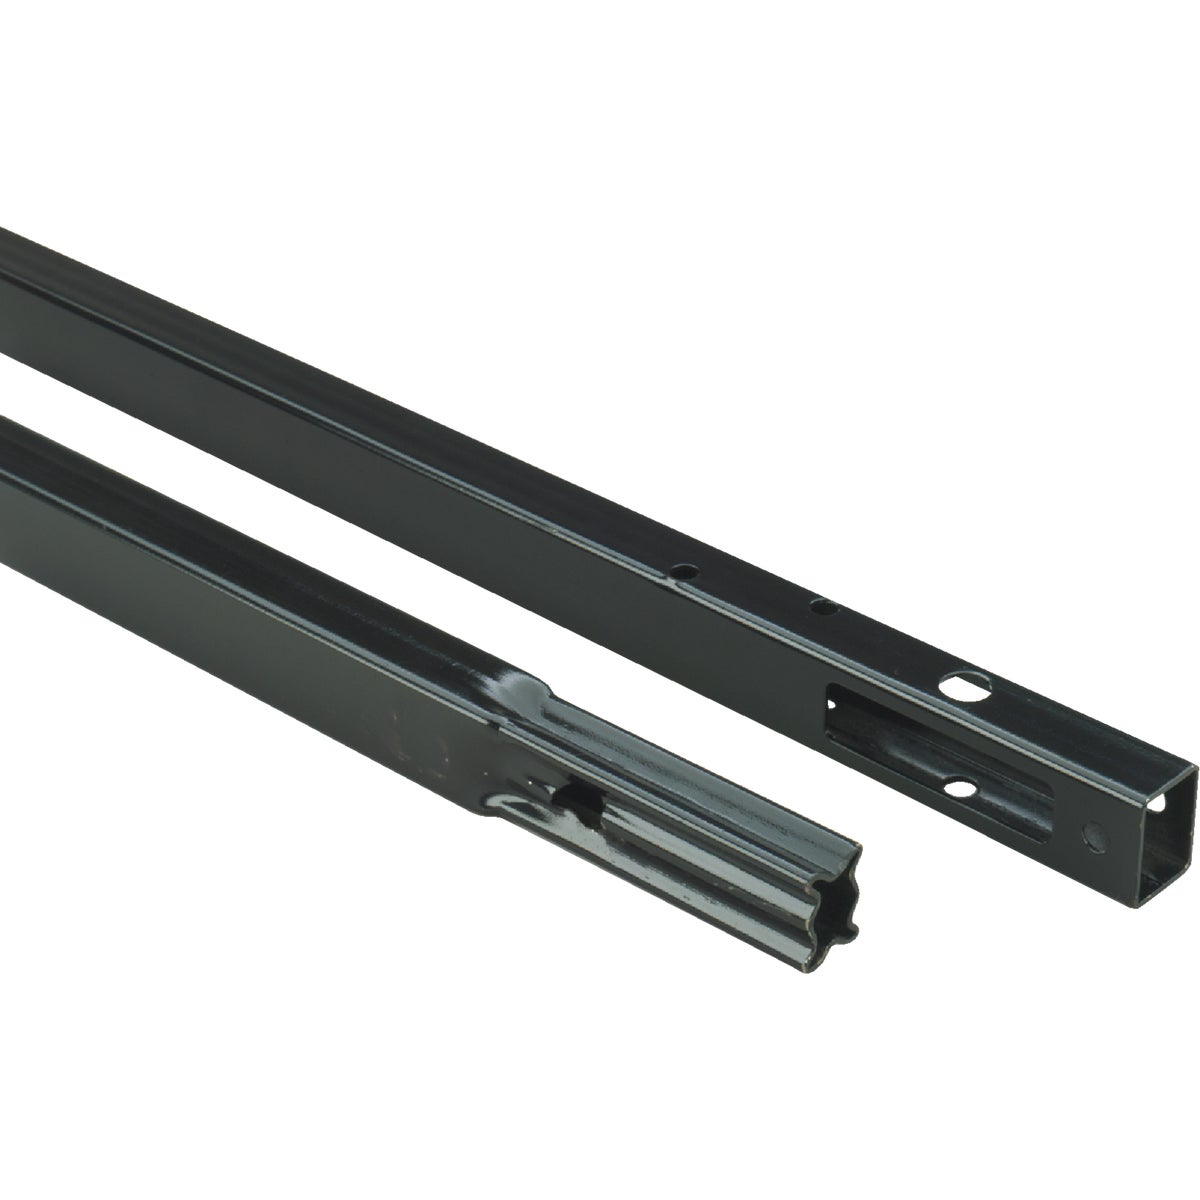 8' RAIL EXTENSION KIT - 8808CB by Chamberlain